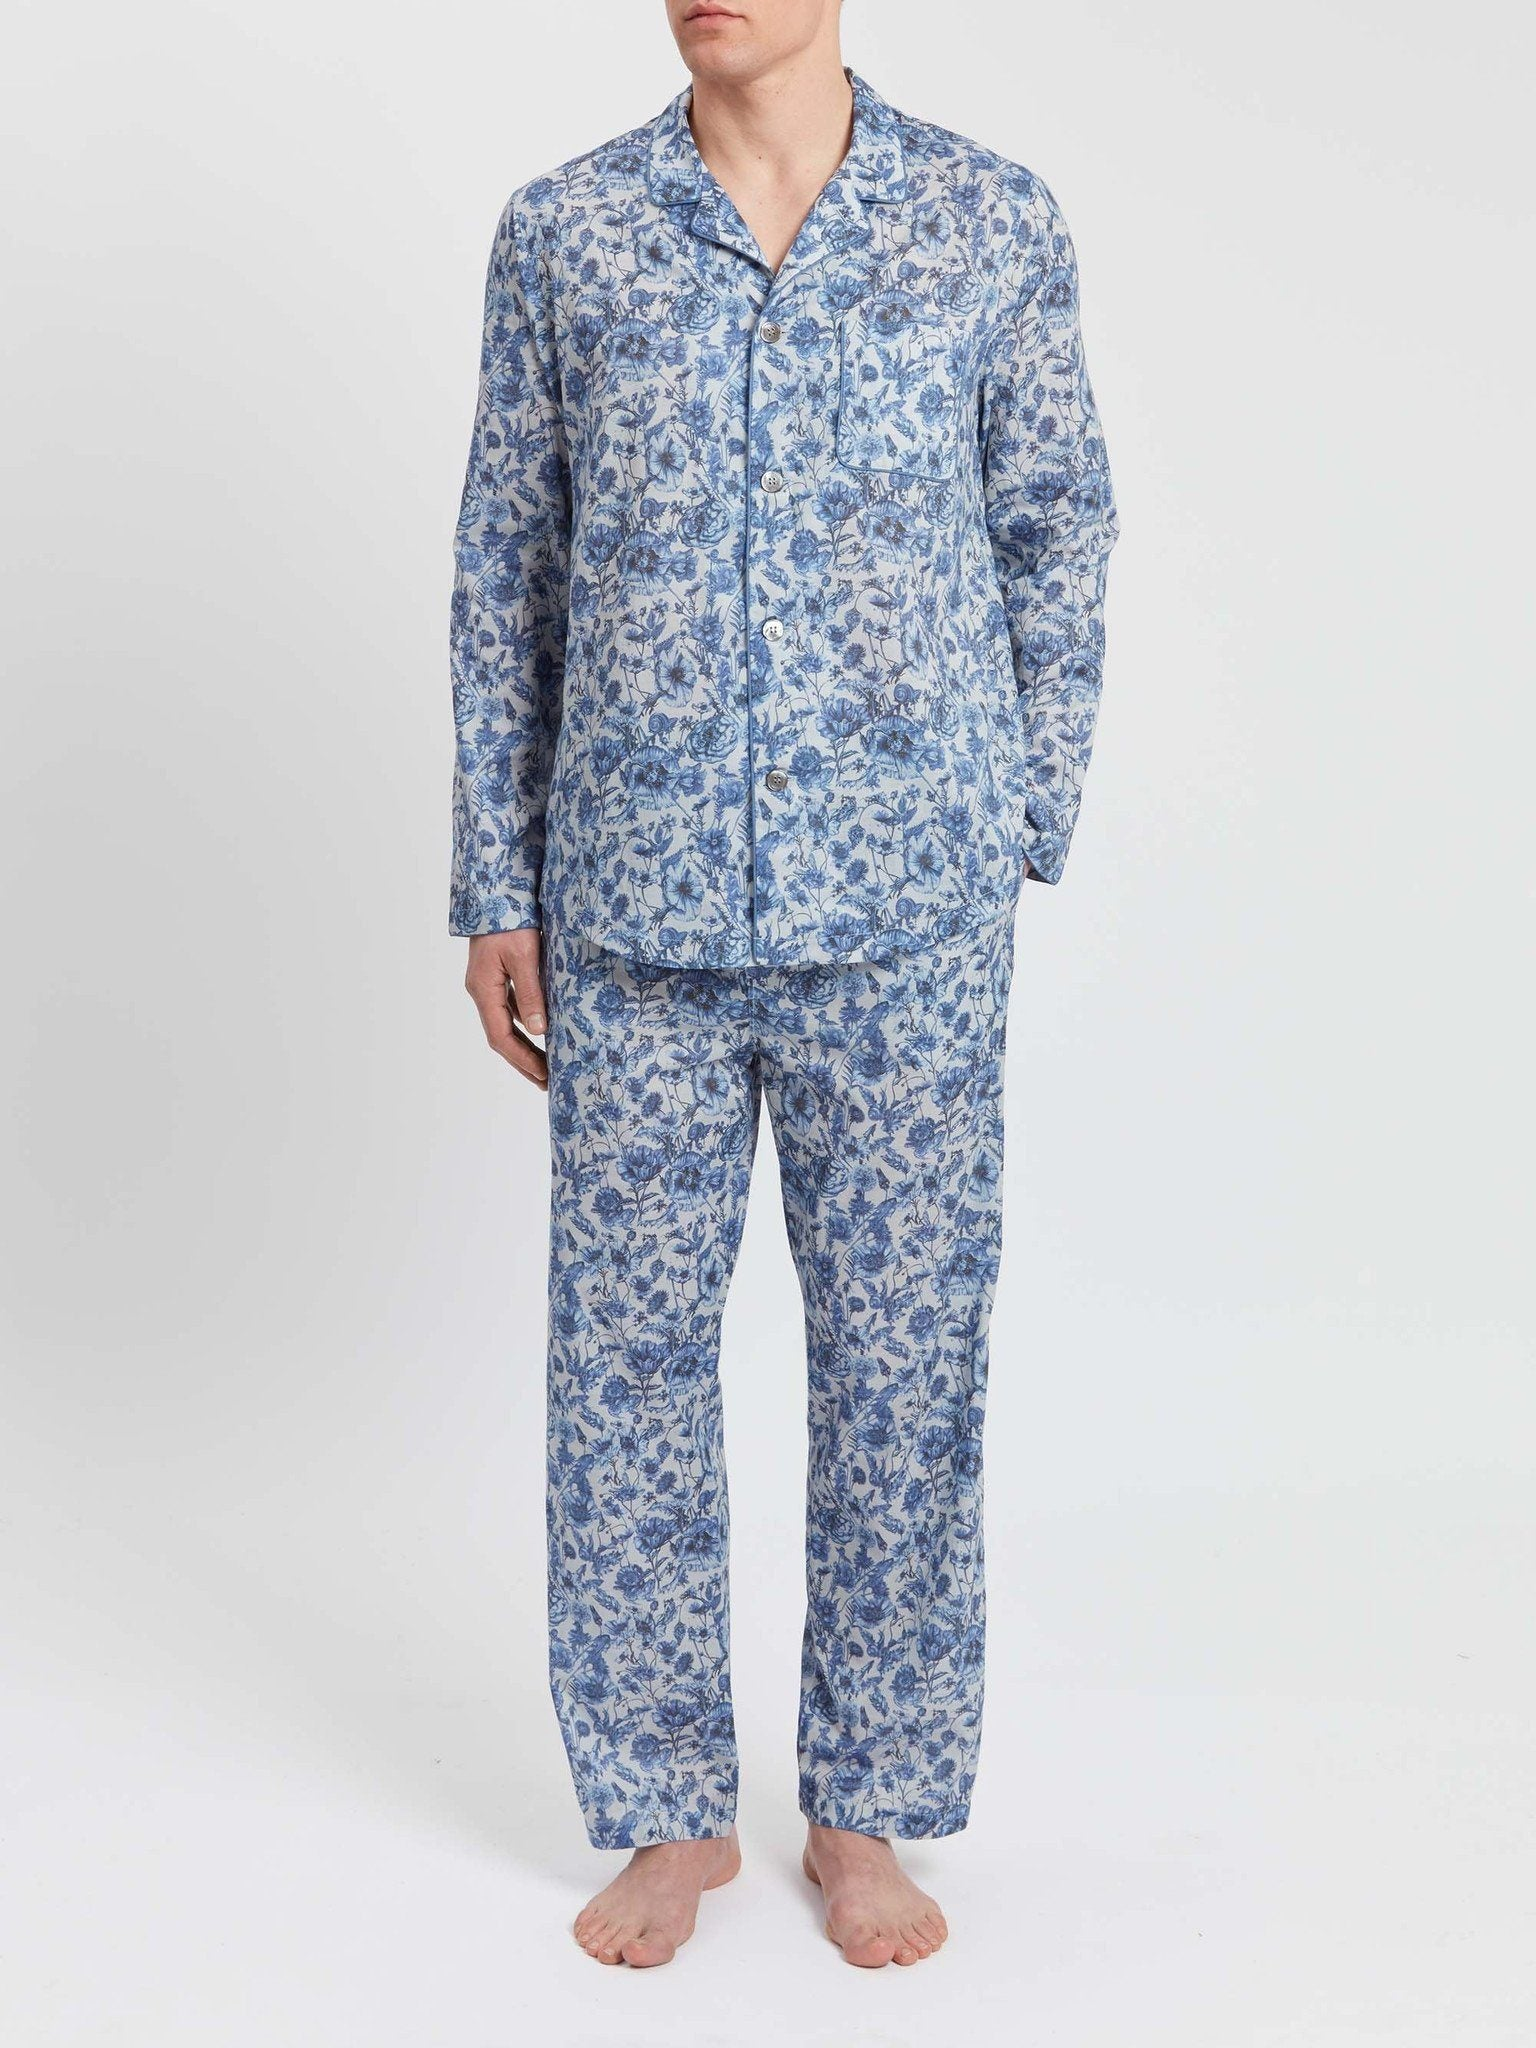 Men's Modern Fit Pajamas,,GentRow.com , | GentRow.com